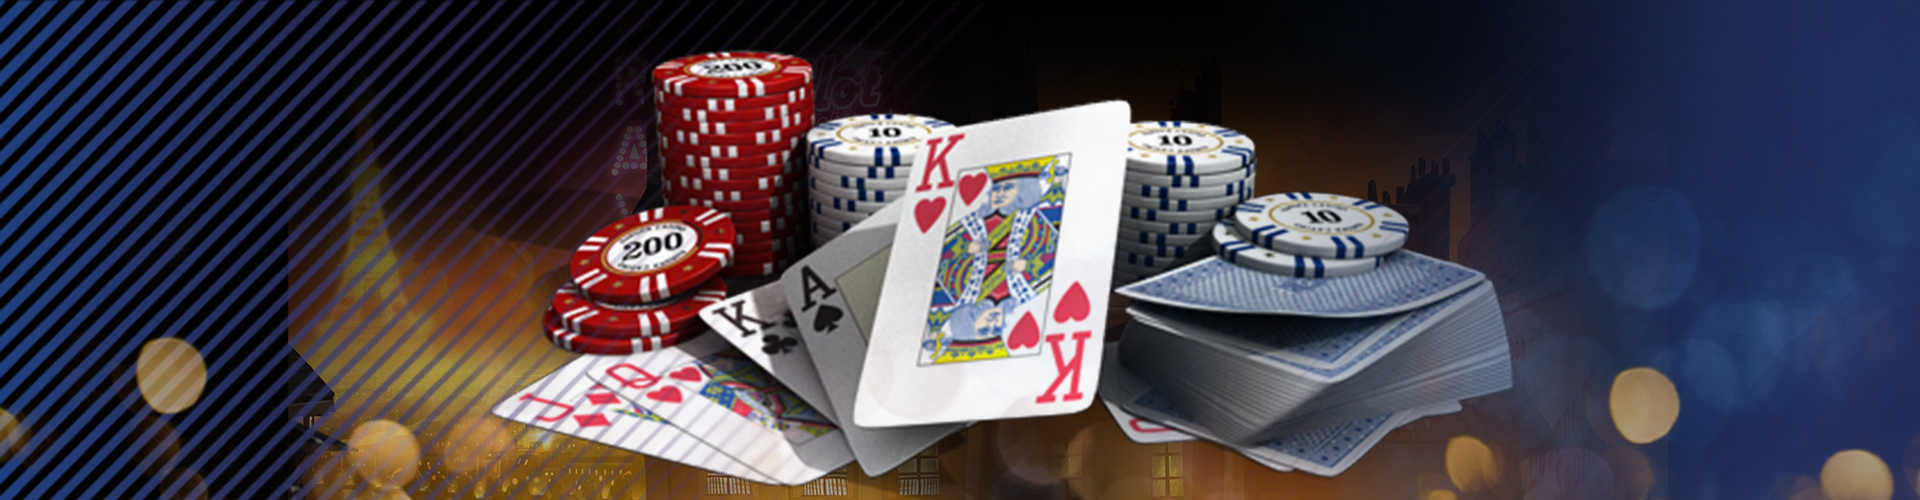 Rules of Card Game Baccarat